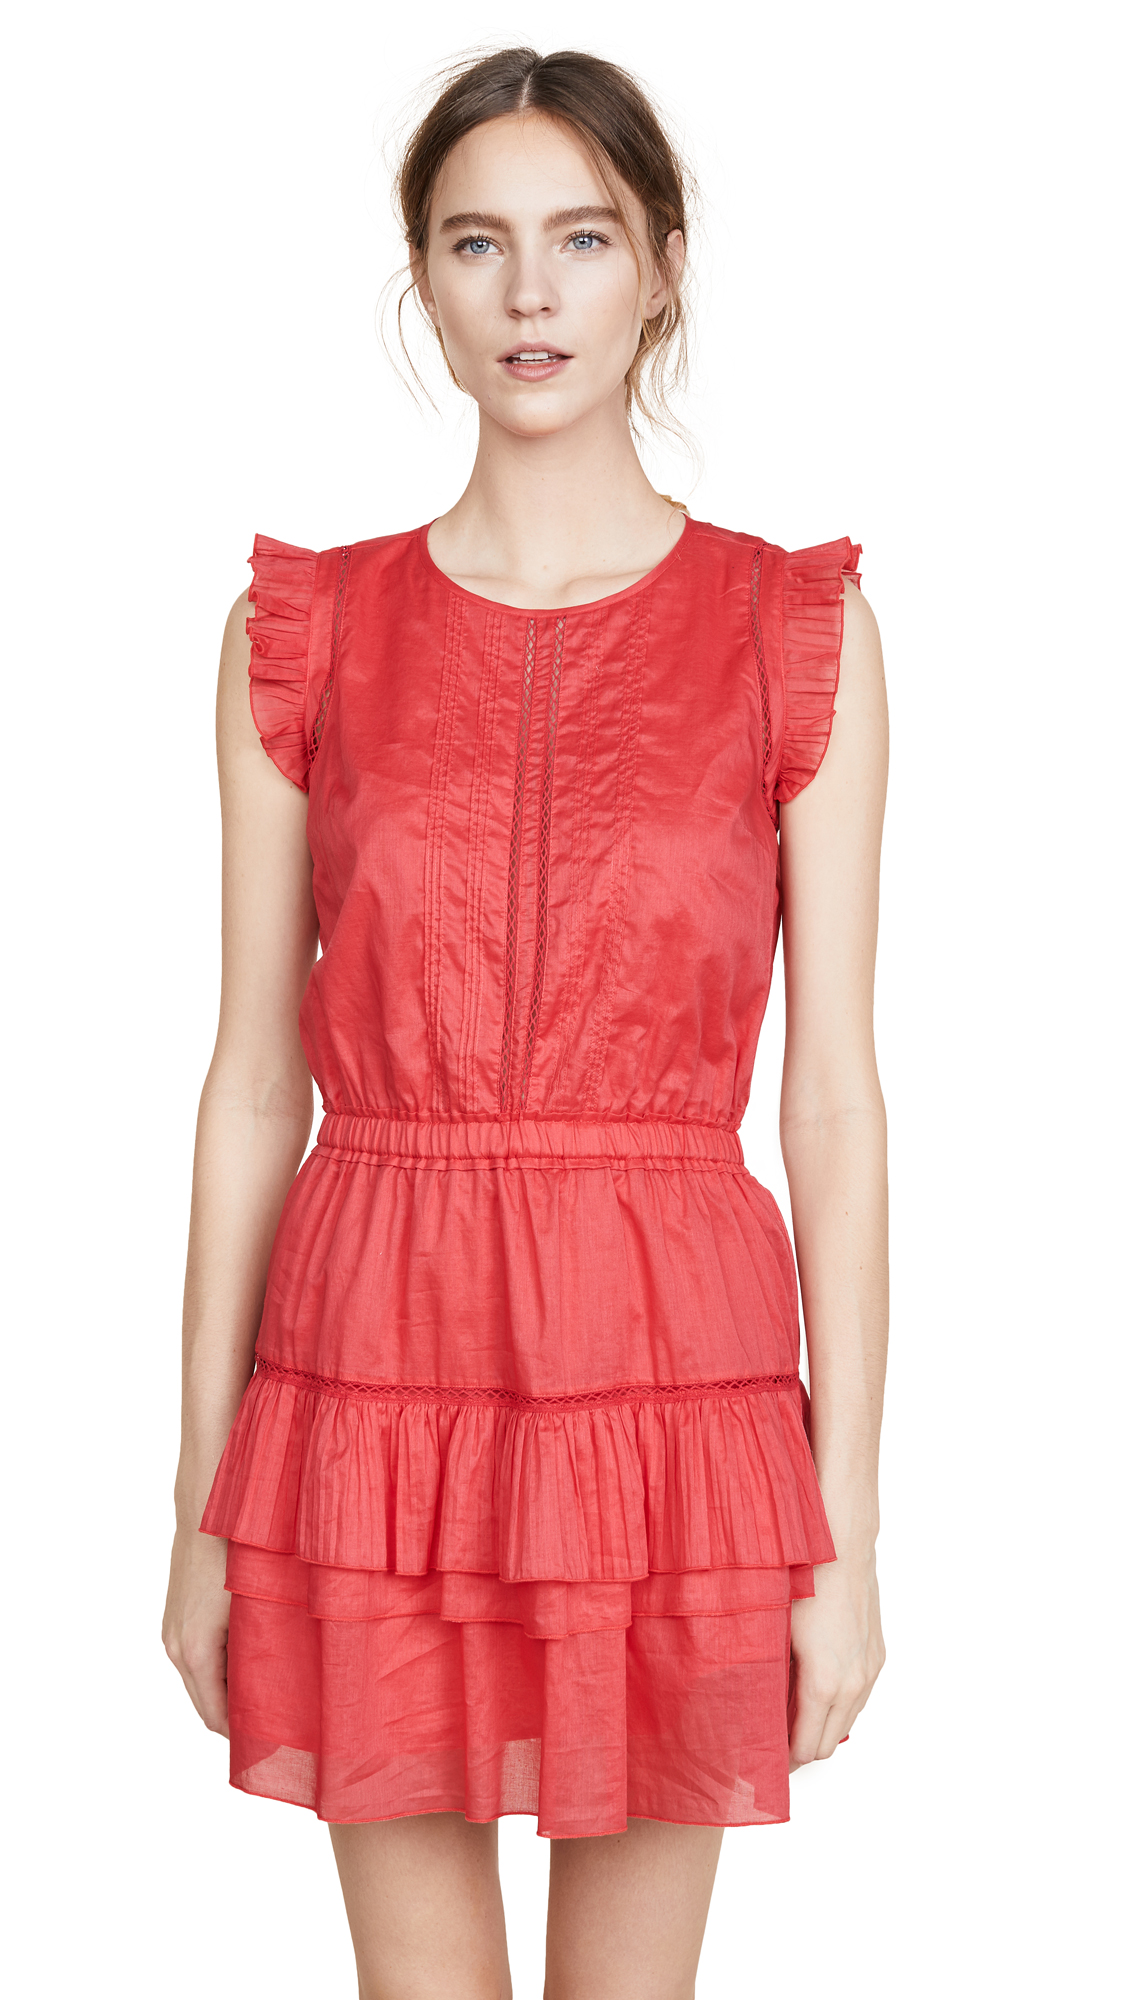 Scotch & Soda/Maison Scotch Sleeveless Dress with Pleated Ruffle